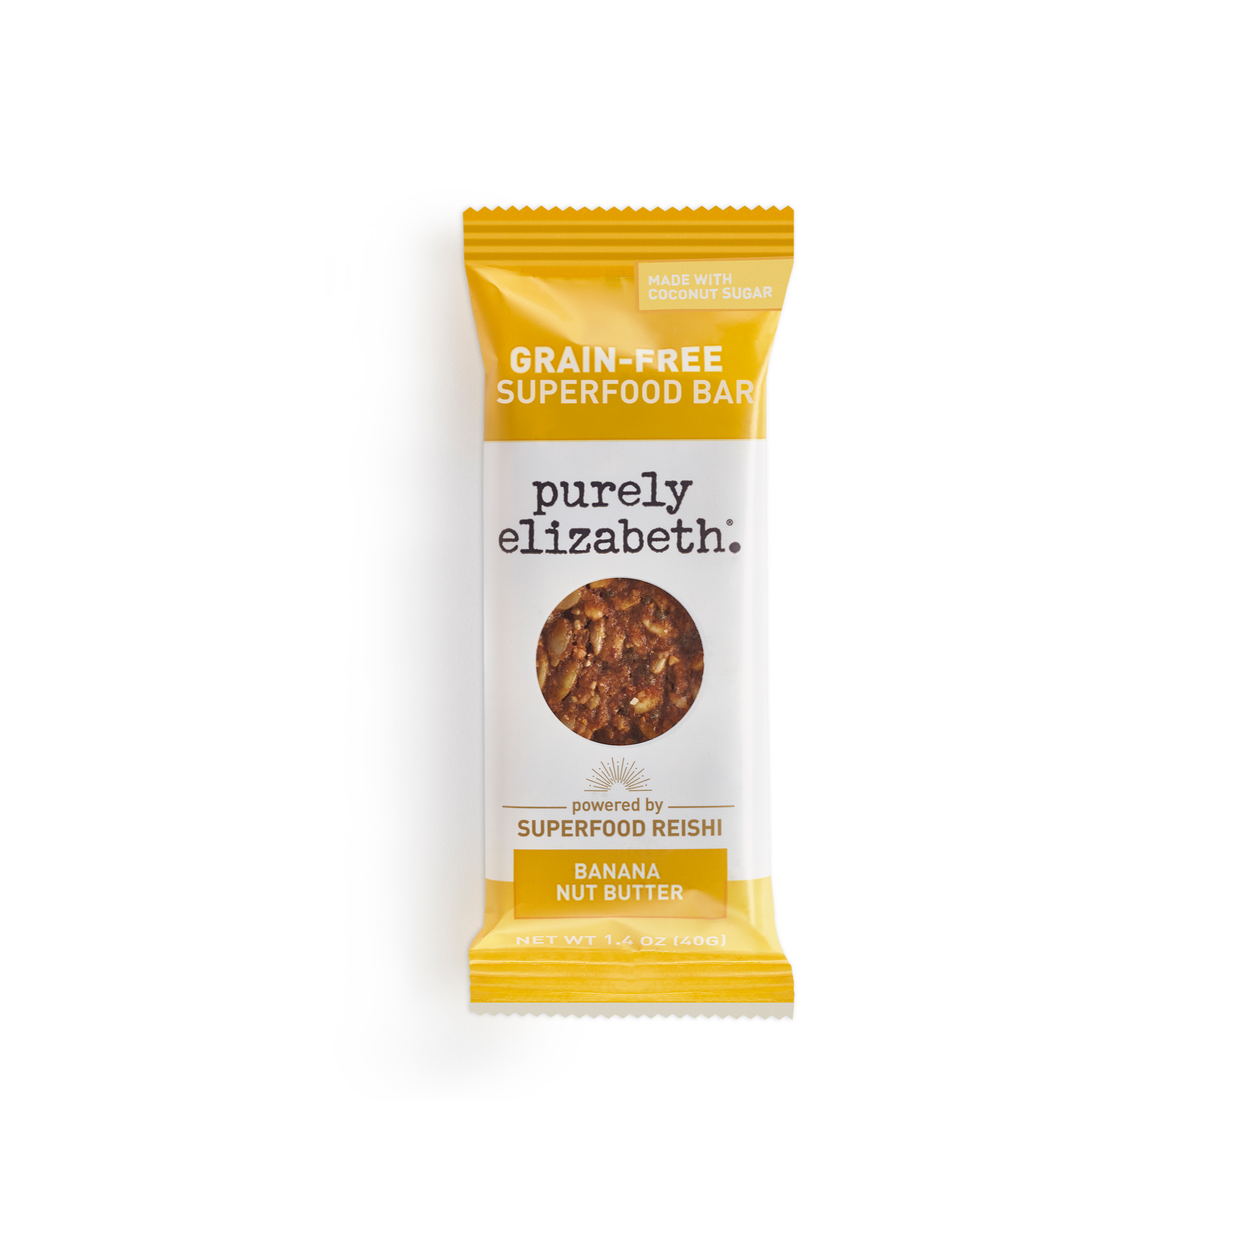 purely elizabeth grain-free granola bar - banana nut